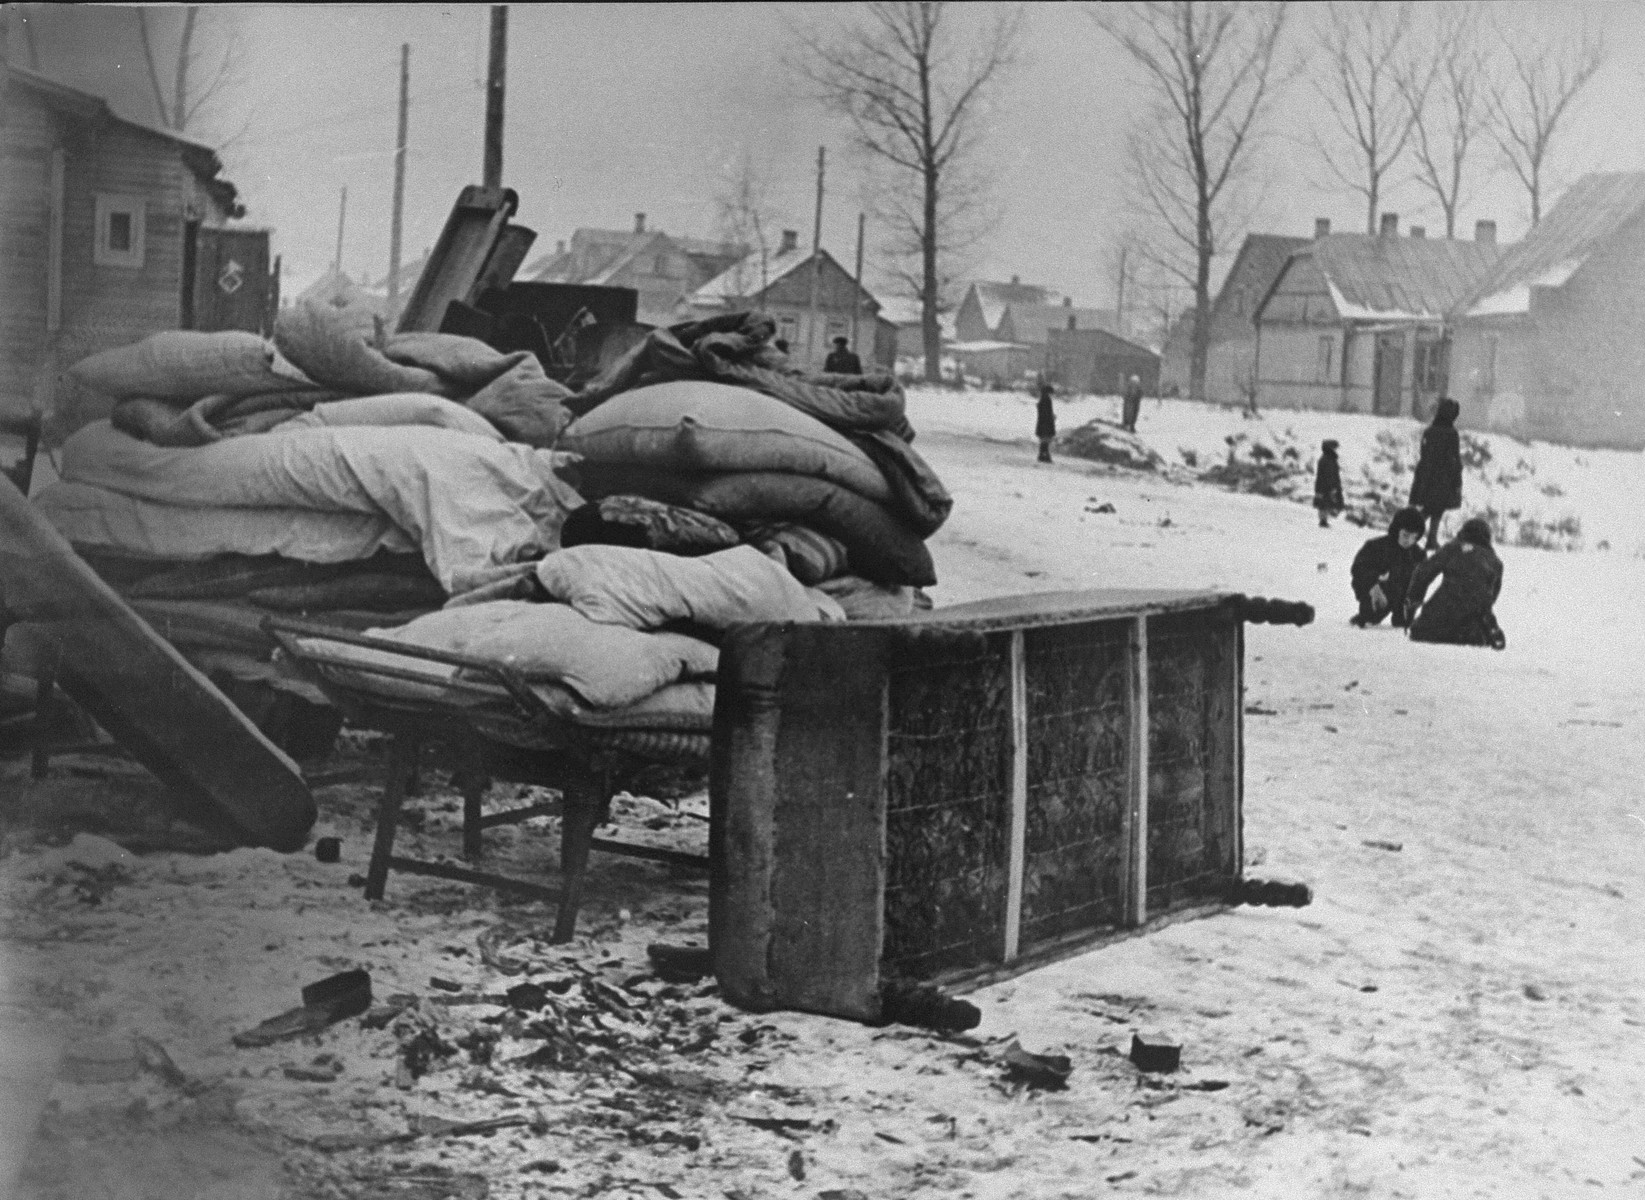 Bedding and furniture piled up on a residential street in the Kovno ghetto.